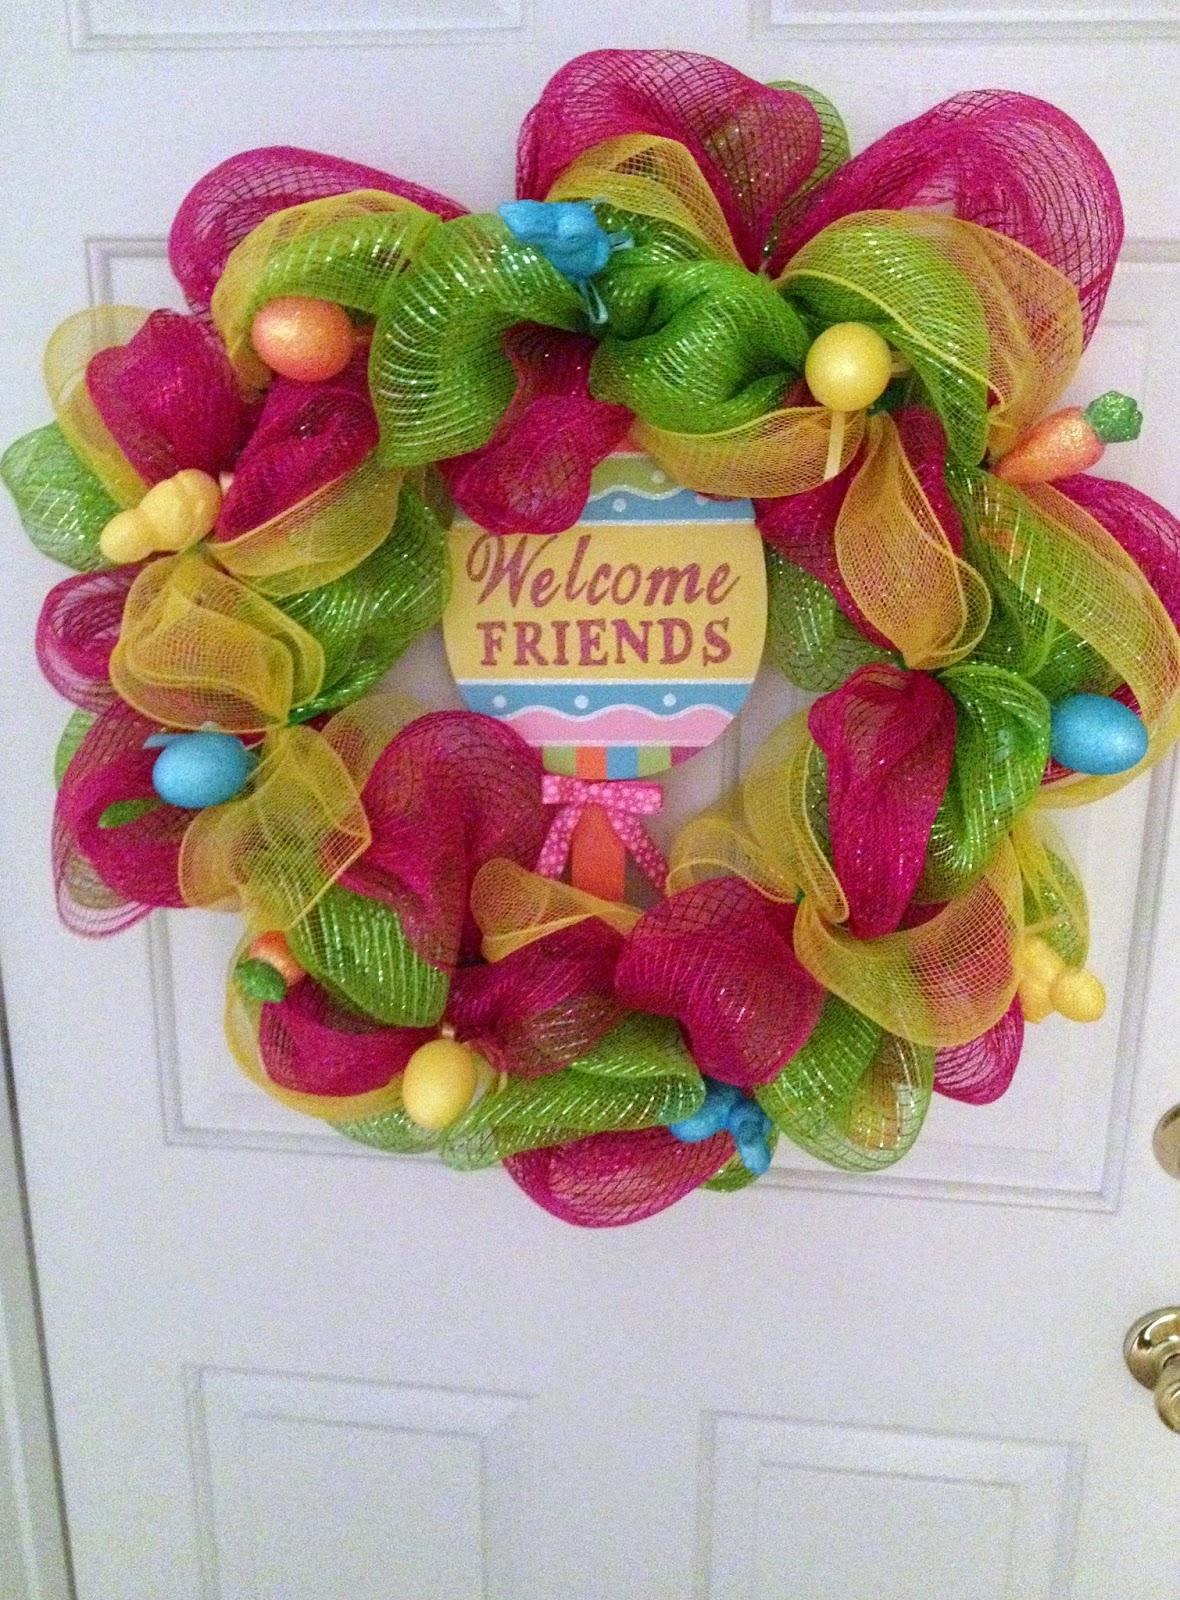 It's the Grad Life: 7 Step DIY Easter Wreath